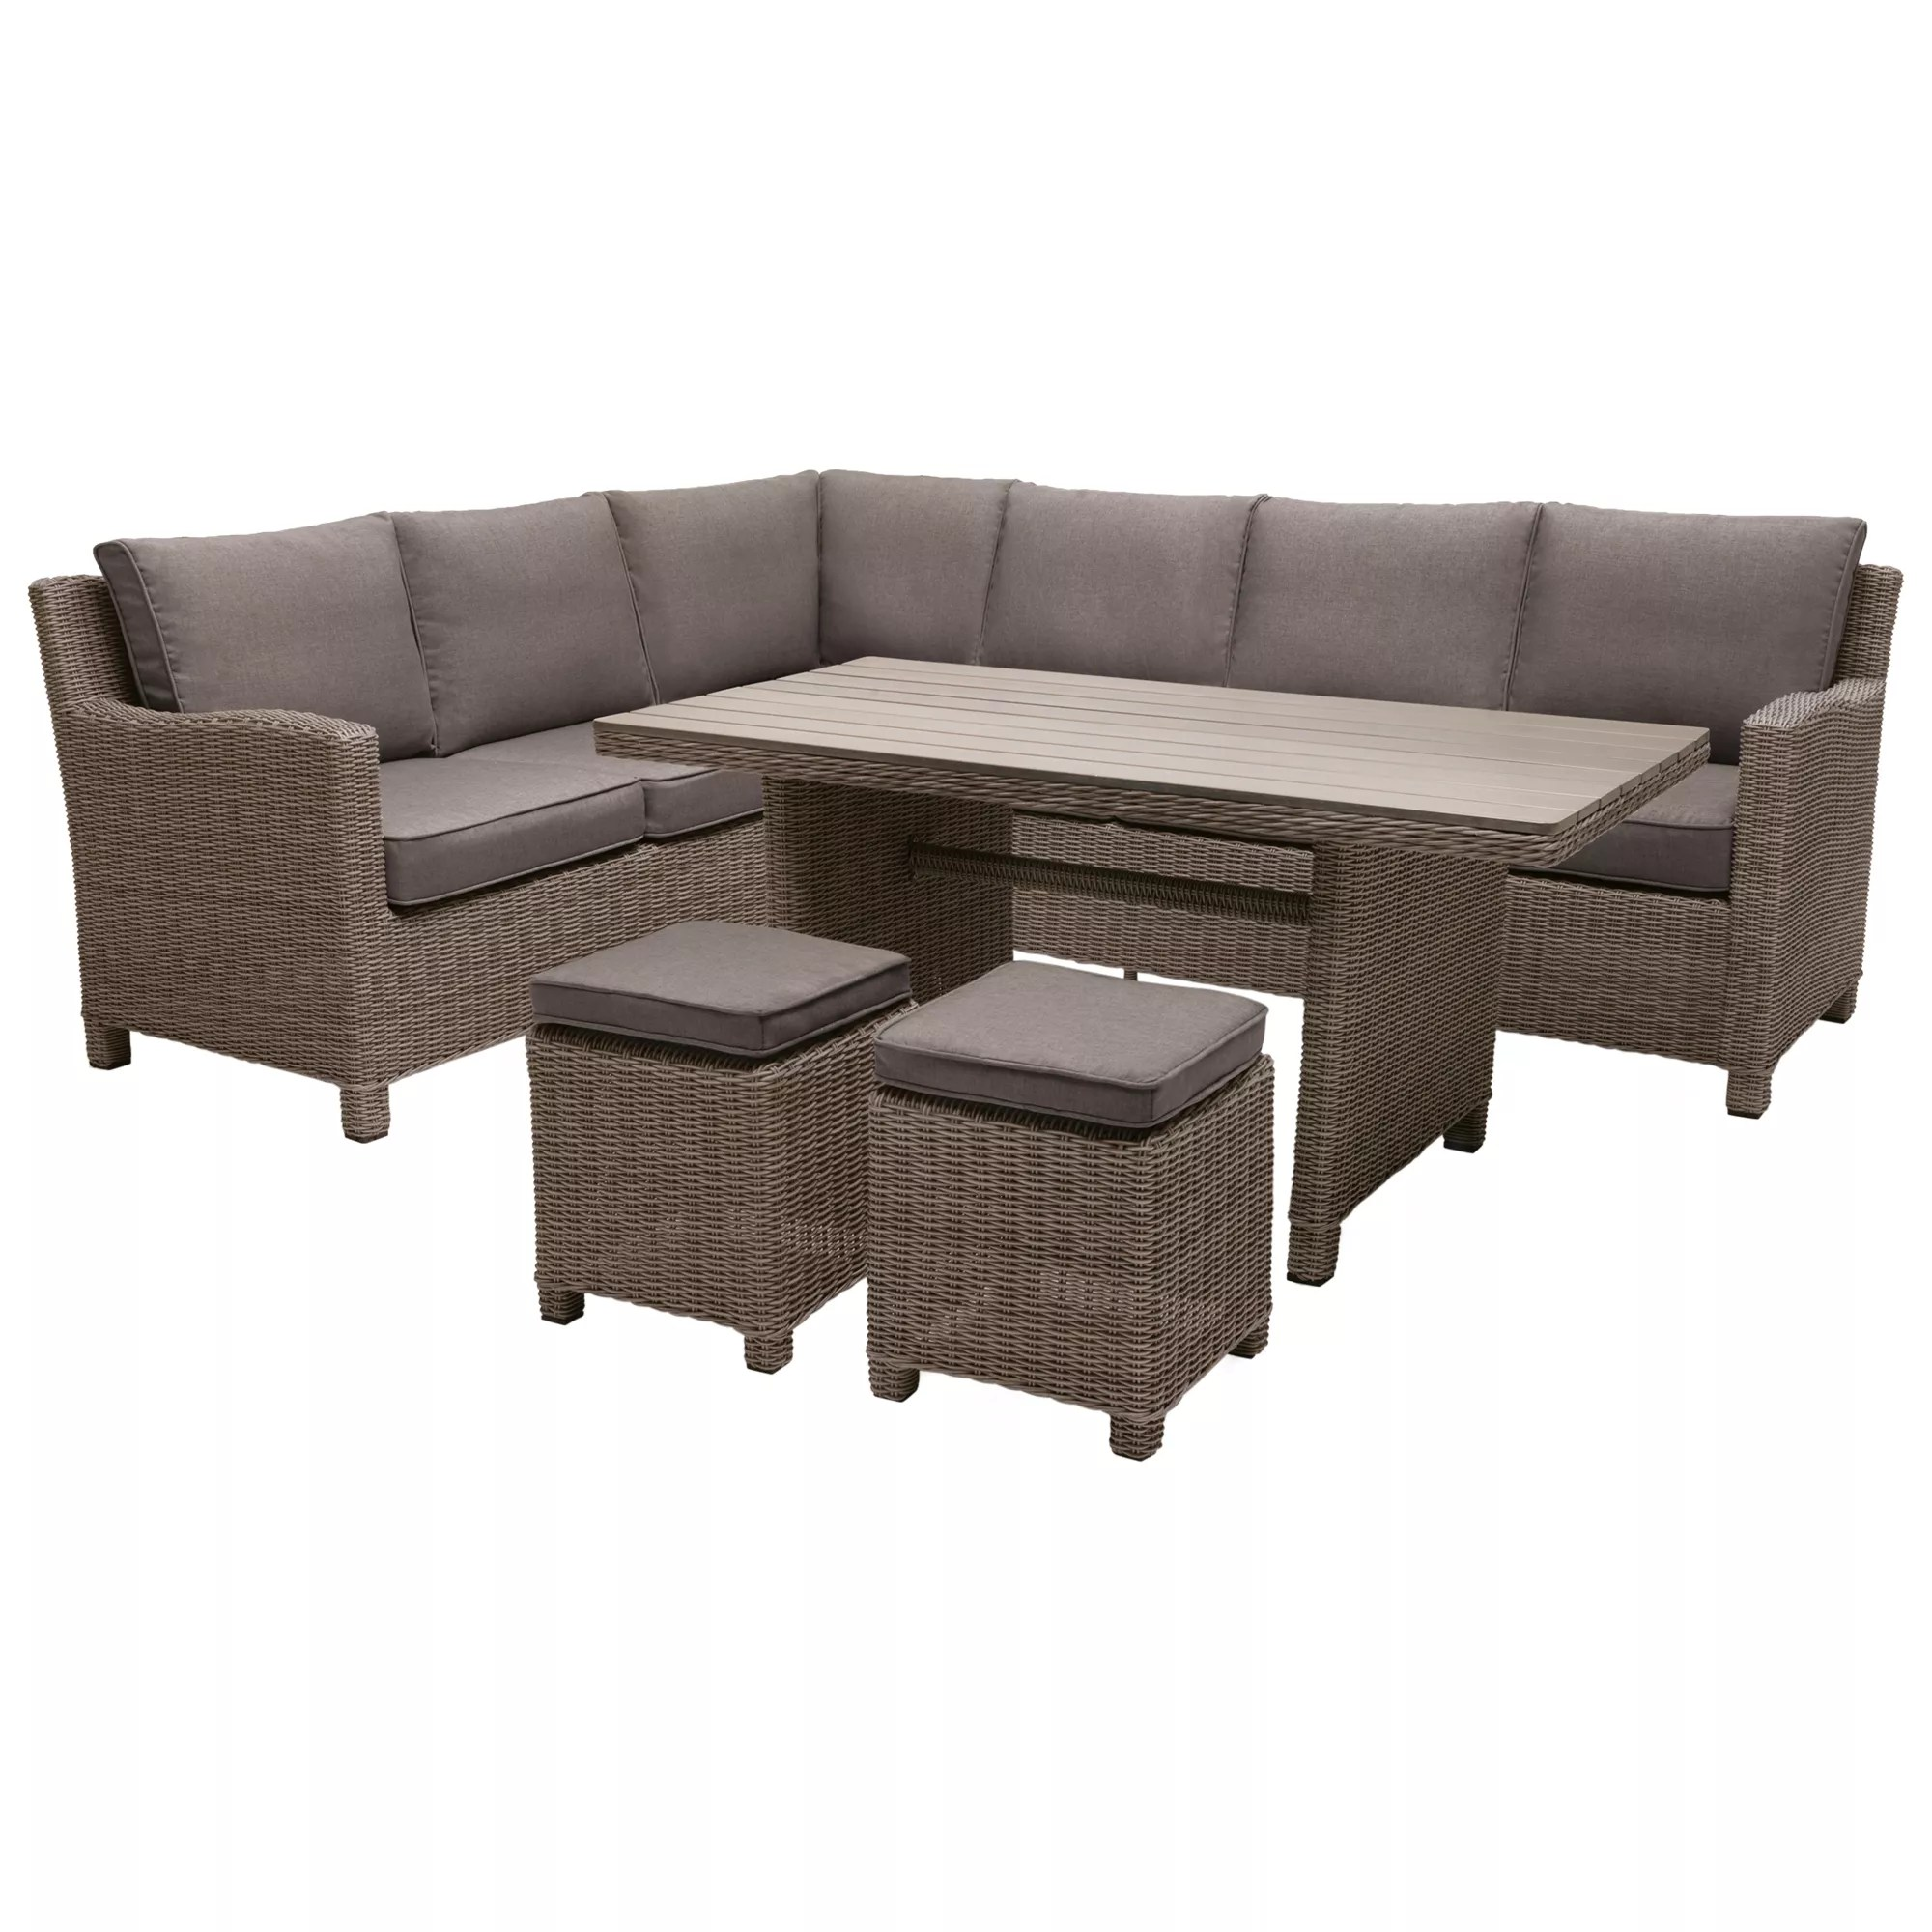 Bad Set Palma Kettler Palma 8 Seater Garden Corner Lounging Table And Chairs Set Rattan